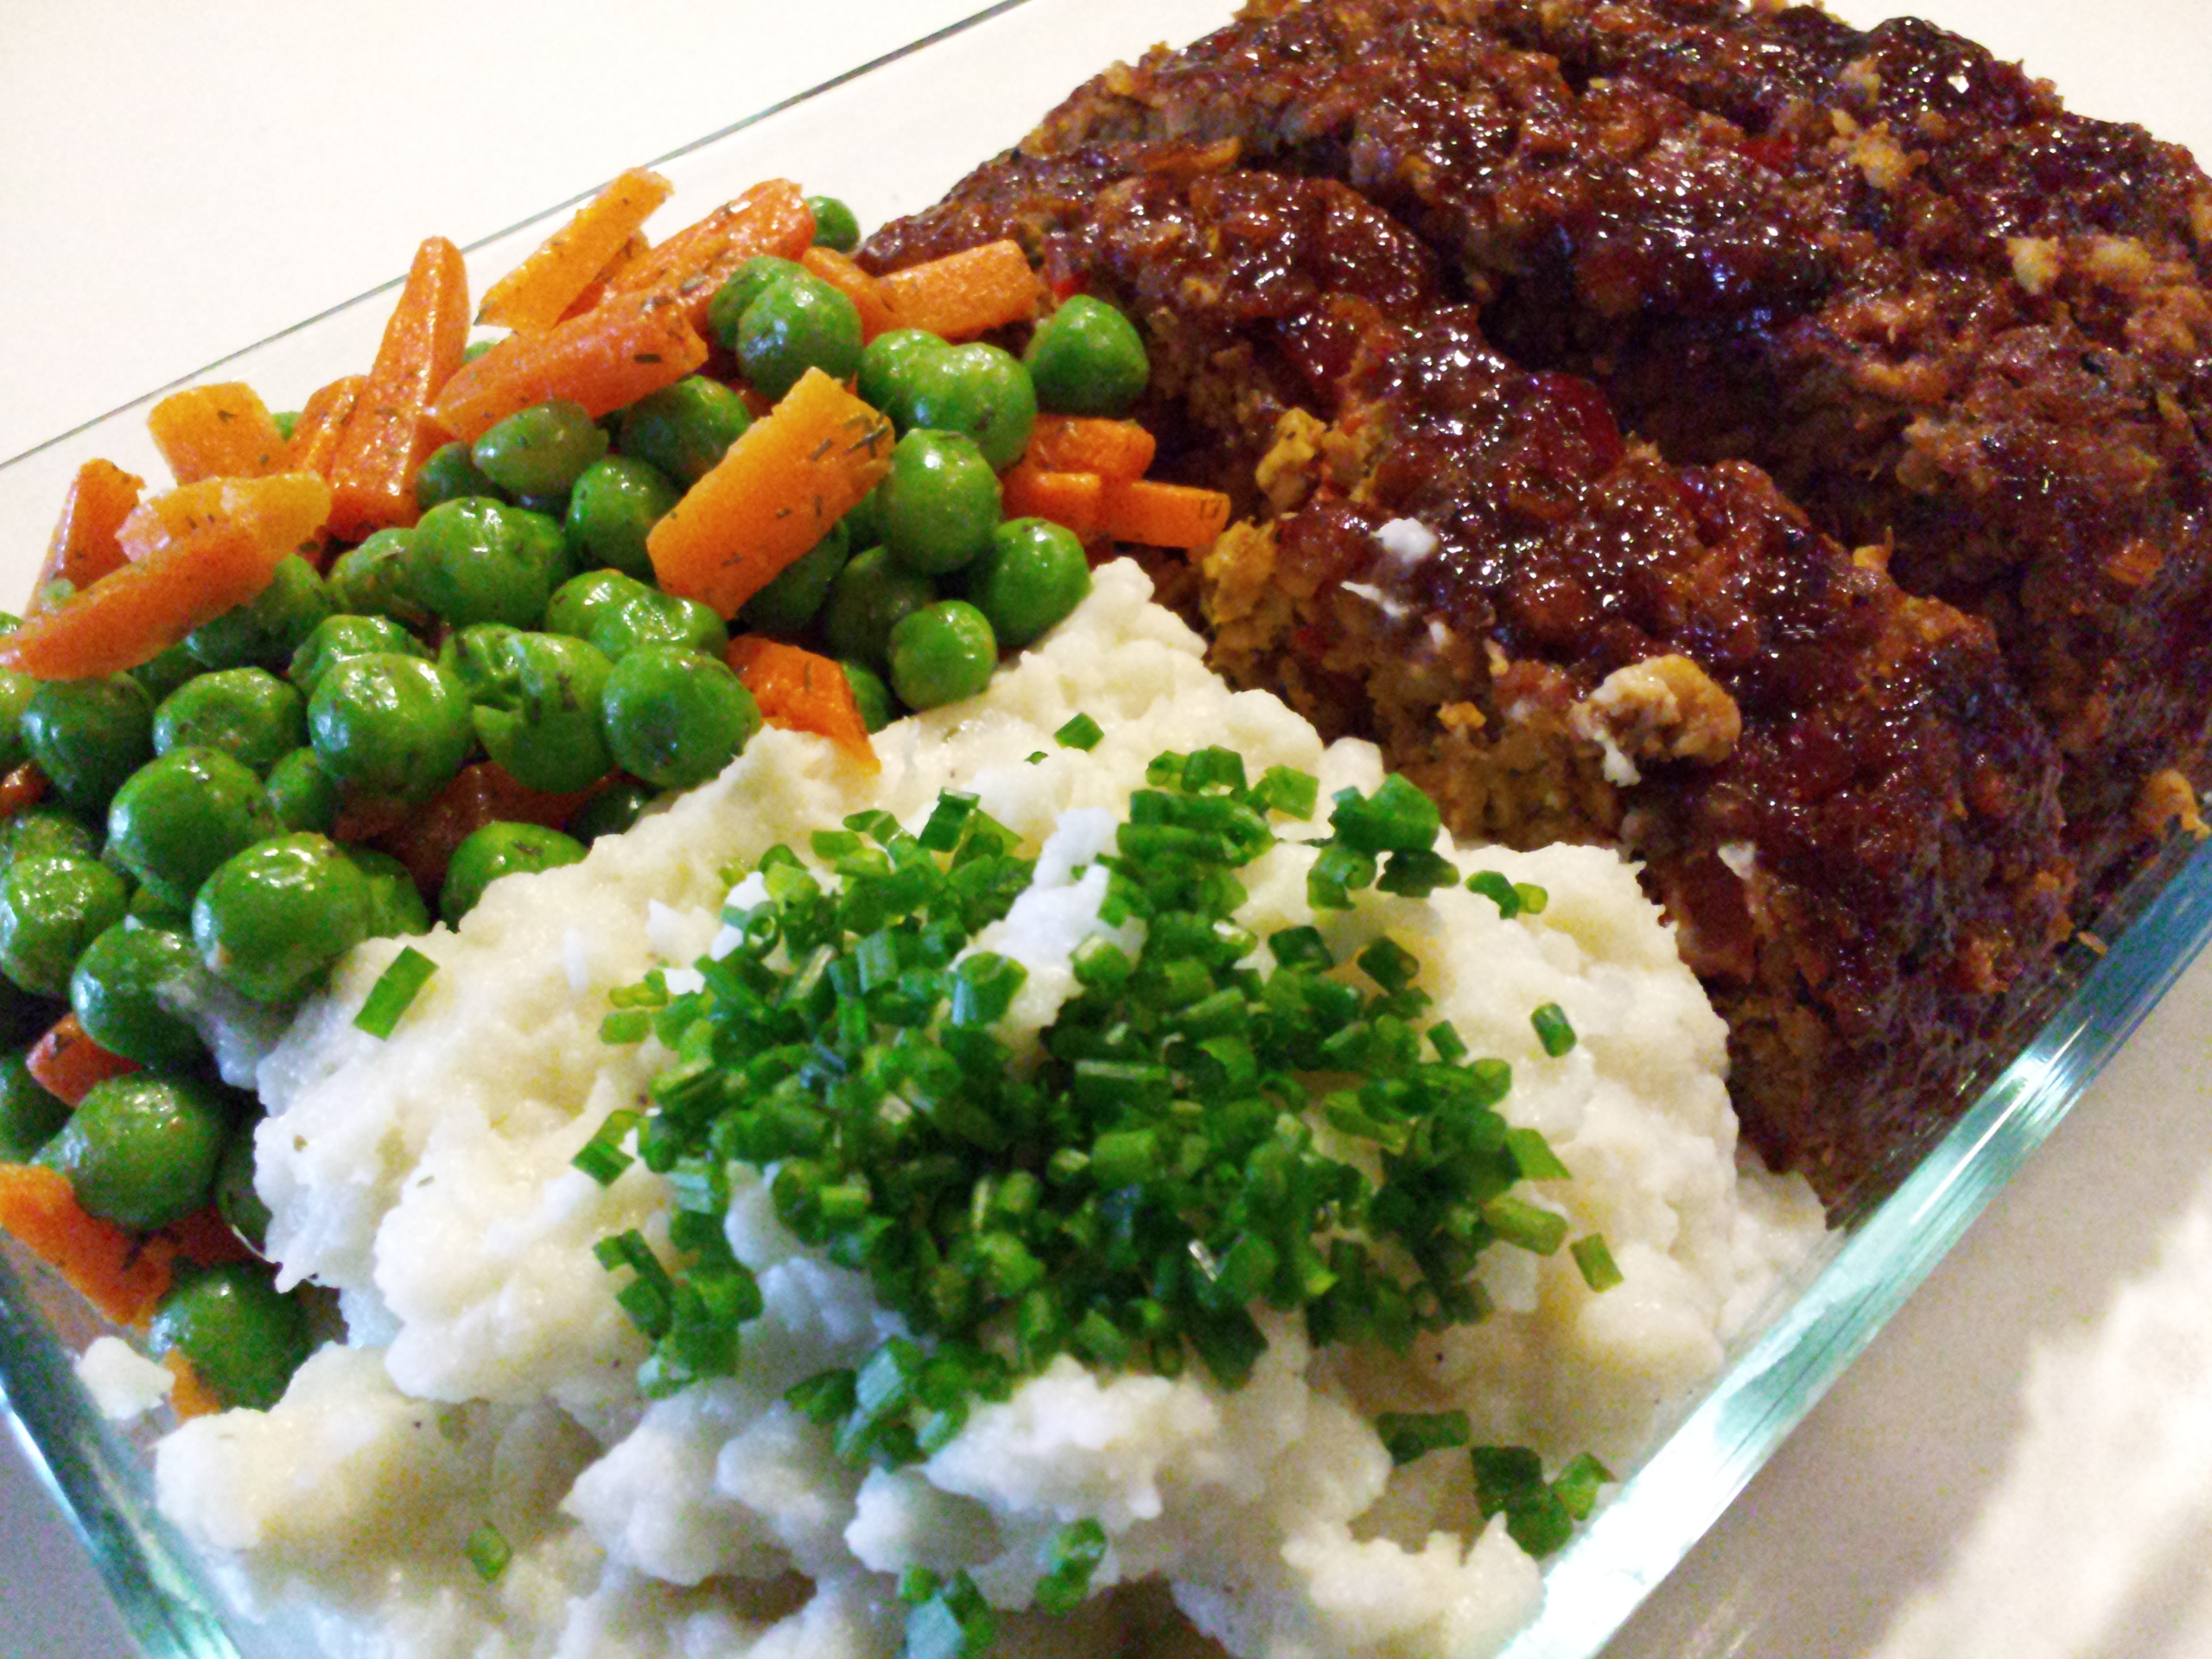 Weeknight Meal: BBQ Turkey Meatloaf, Creamy Mashed Cauliflower, Peas & Carrots with Dill